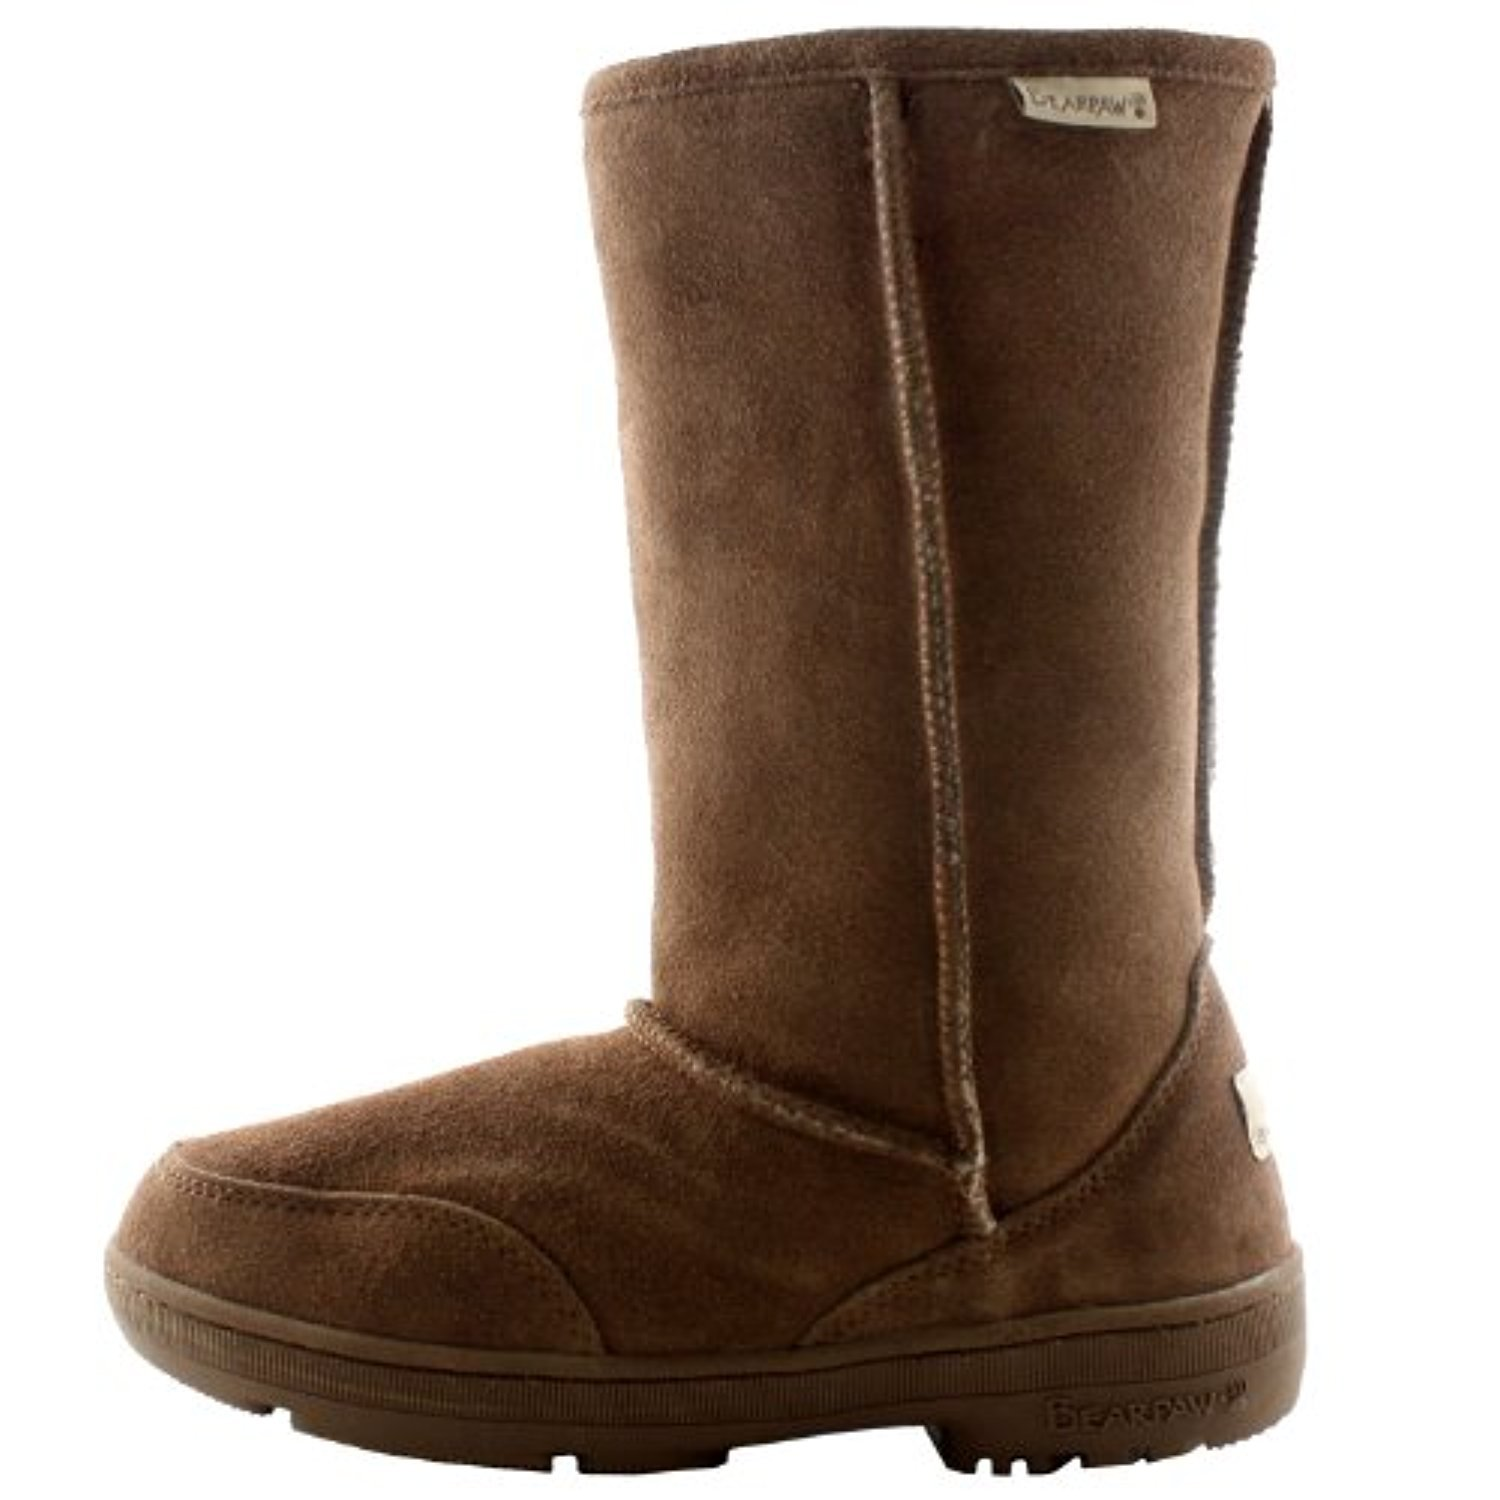 BEARPAW Women's Meadow Mid Calf Boot B00IV3QMDC 6 B(M) US|Hickory/Champagne Ii